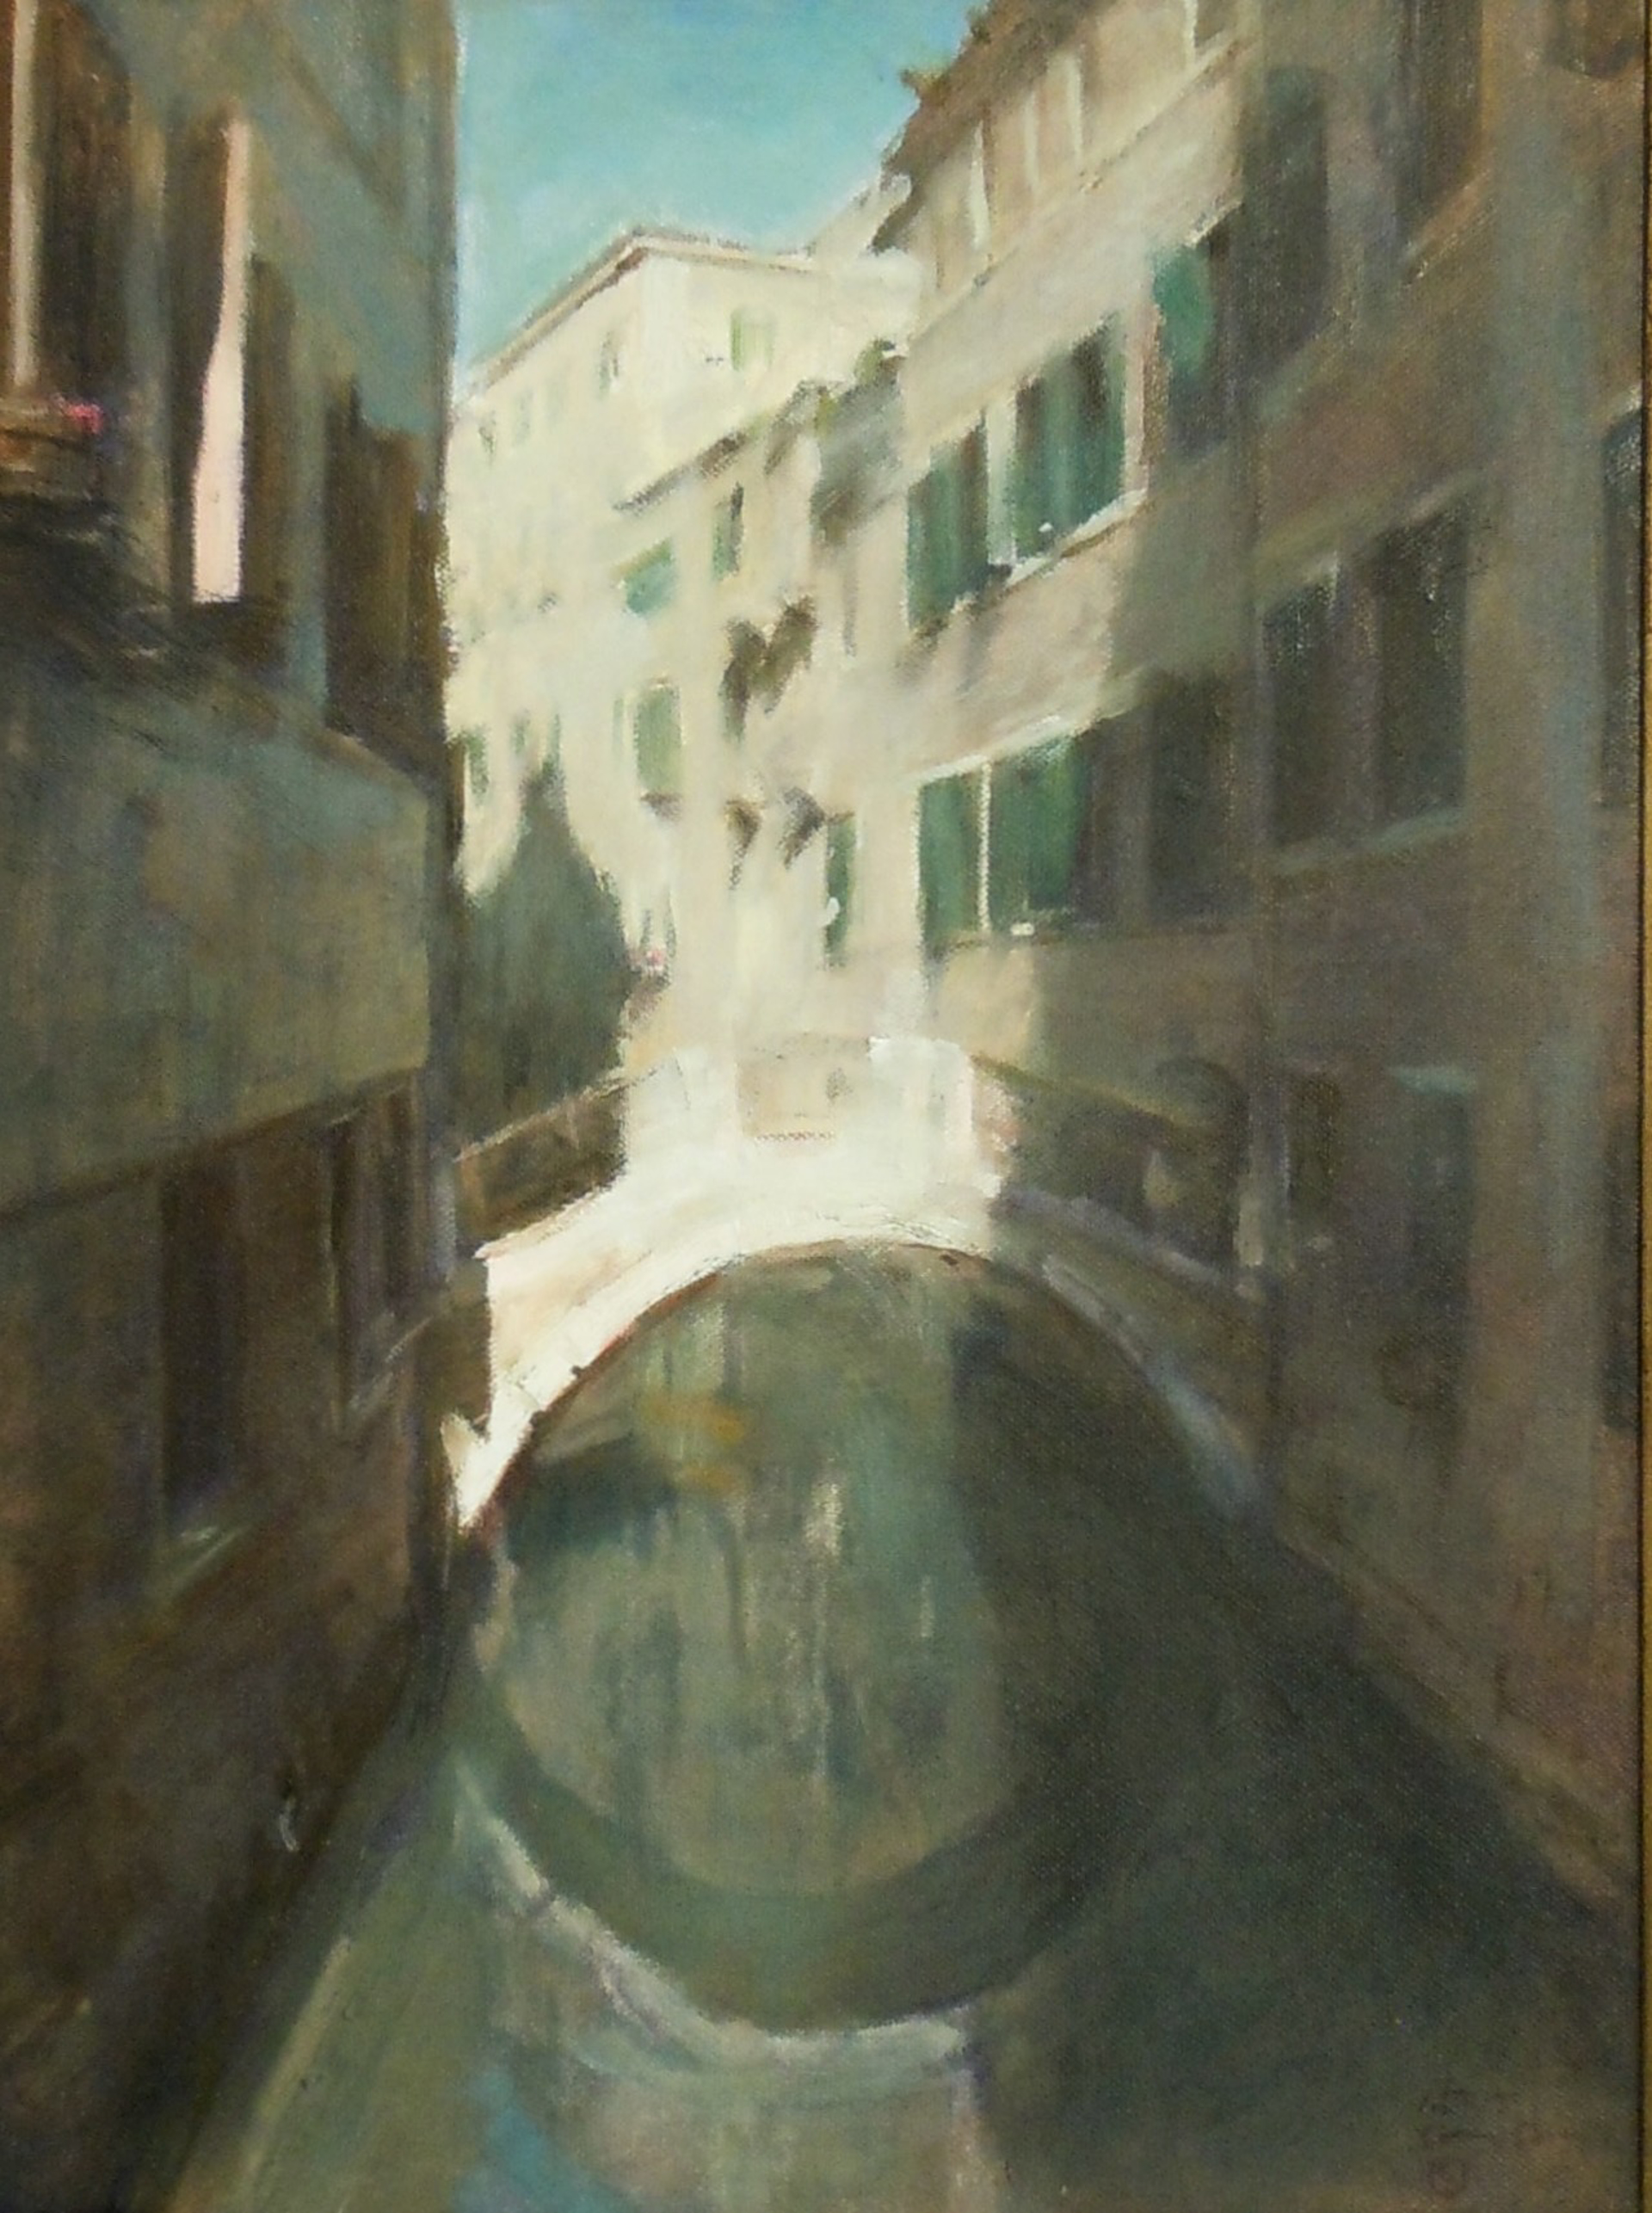 Venice by Shang Ding